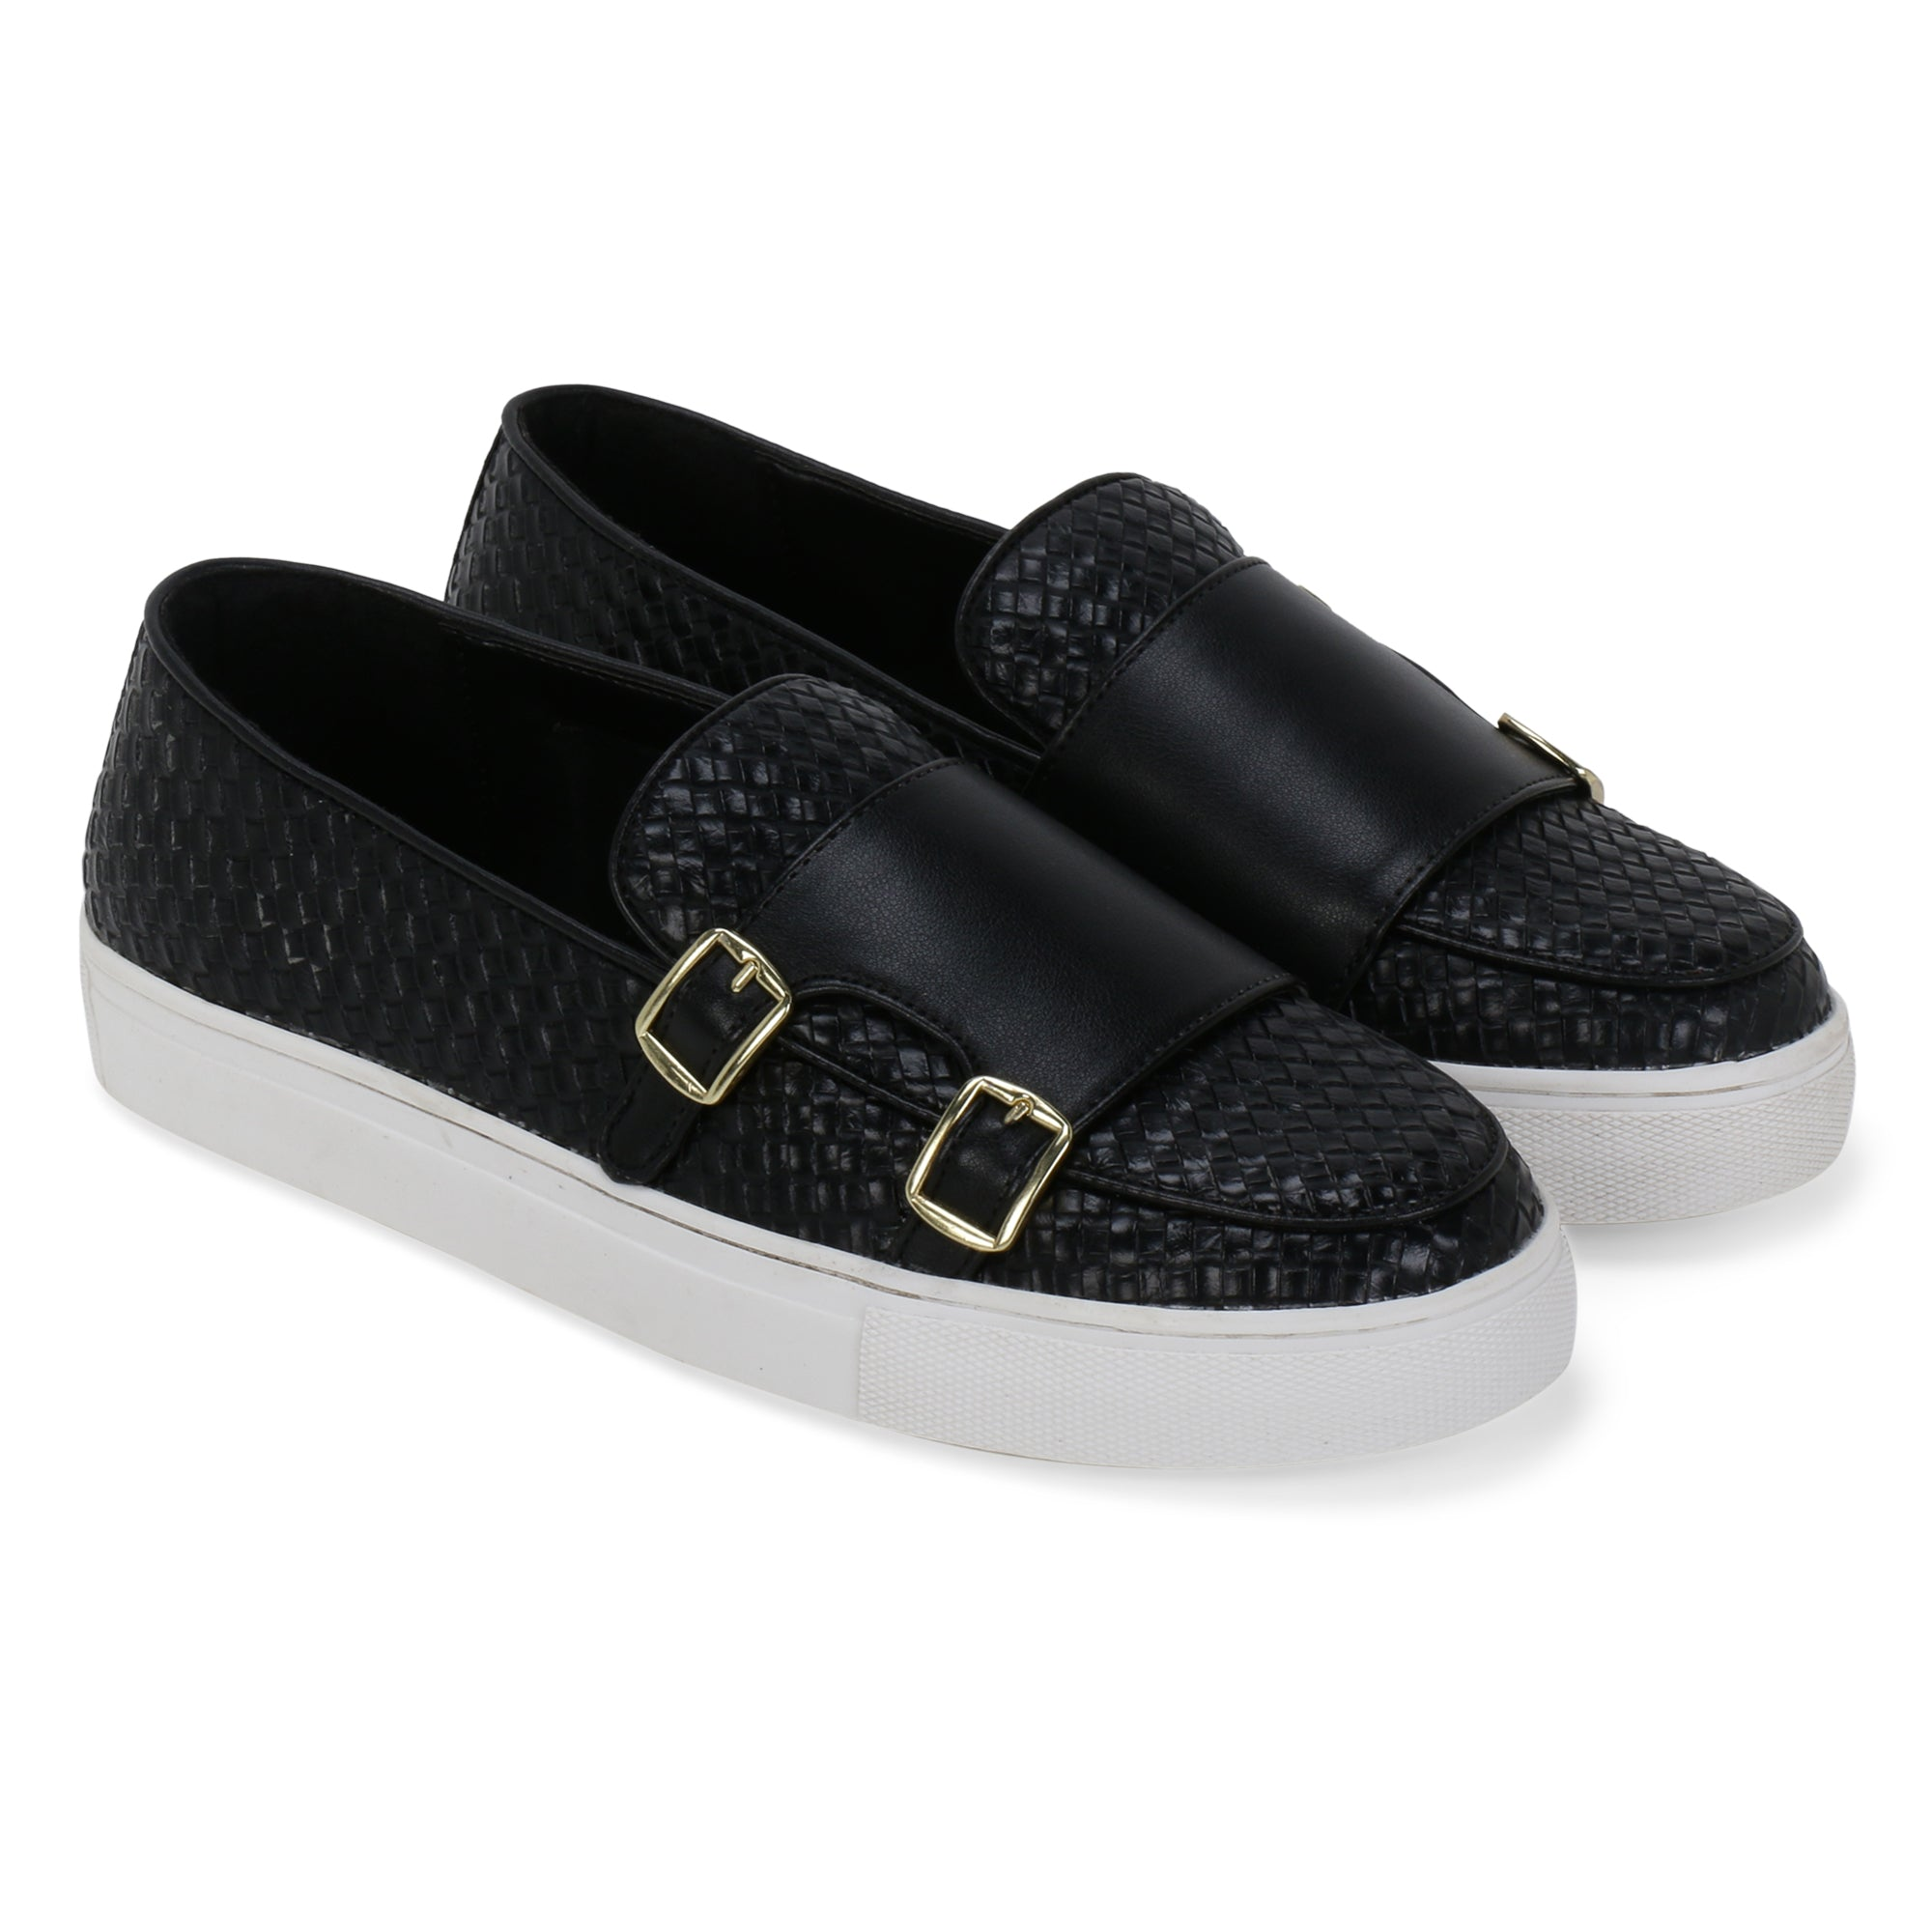 MADISON BLACK DOUBLE MONK BRAIDED SNEAKER